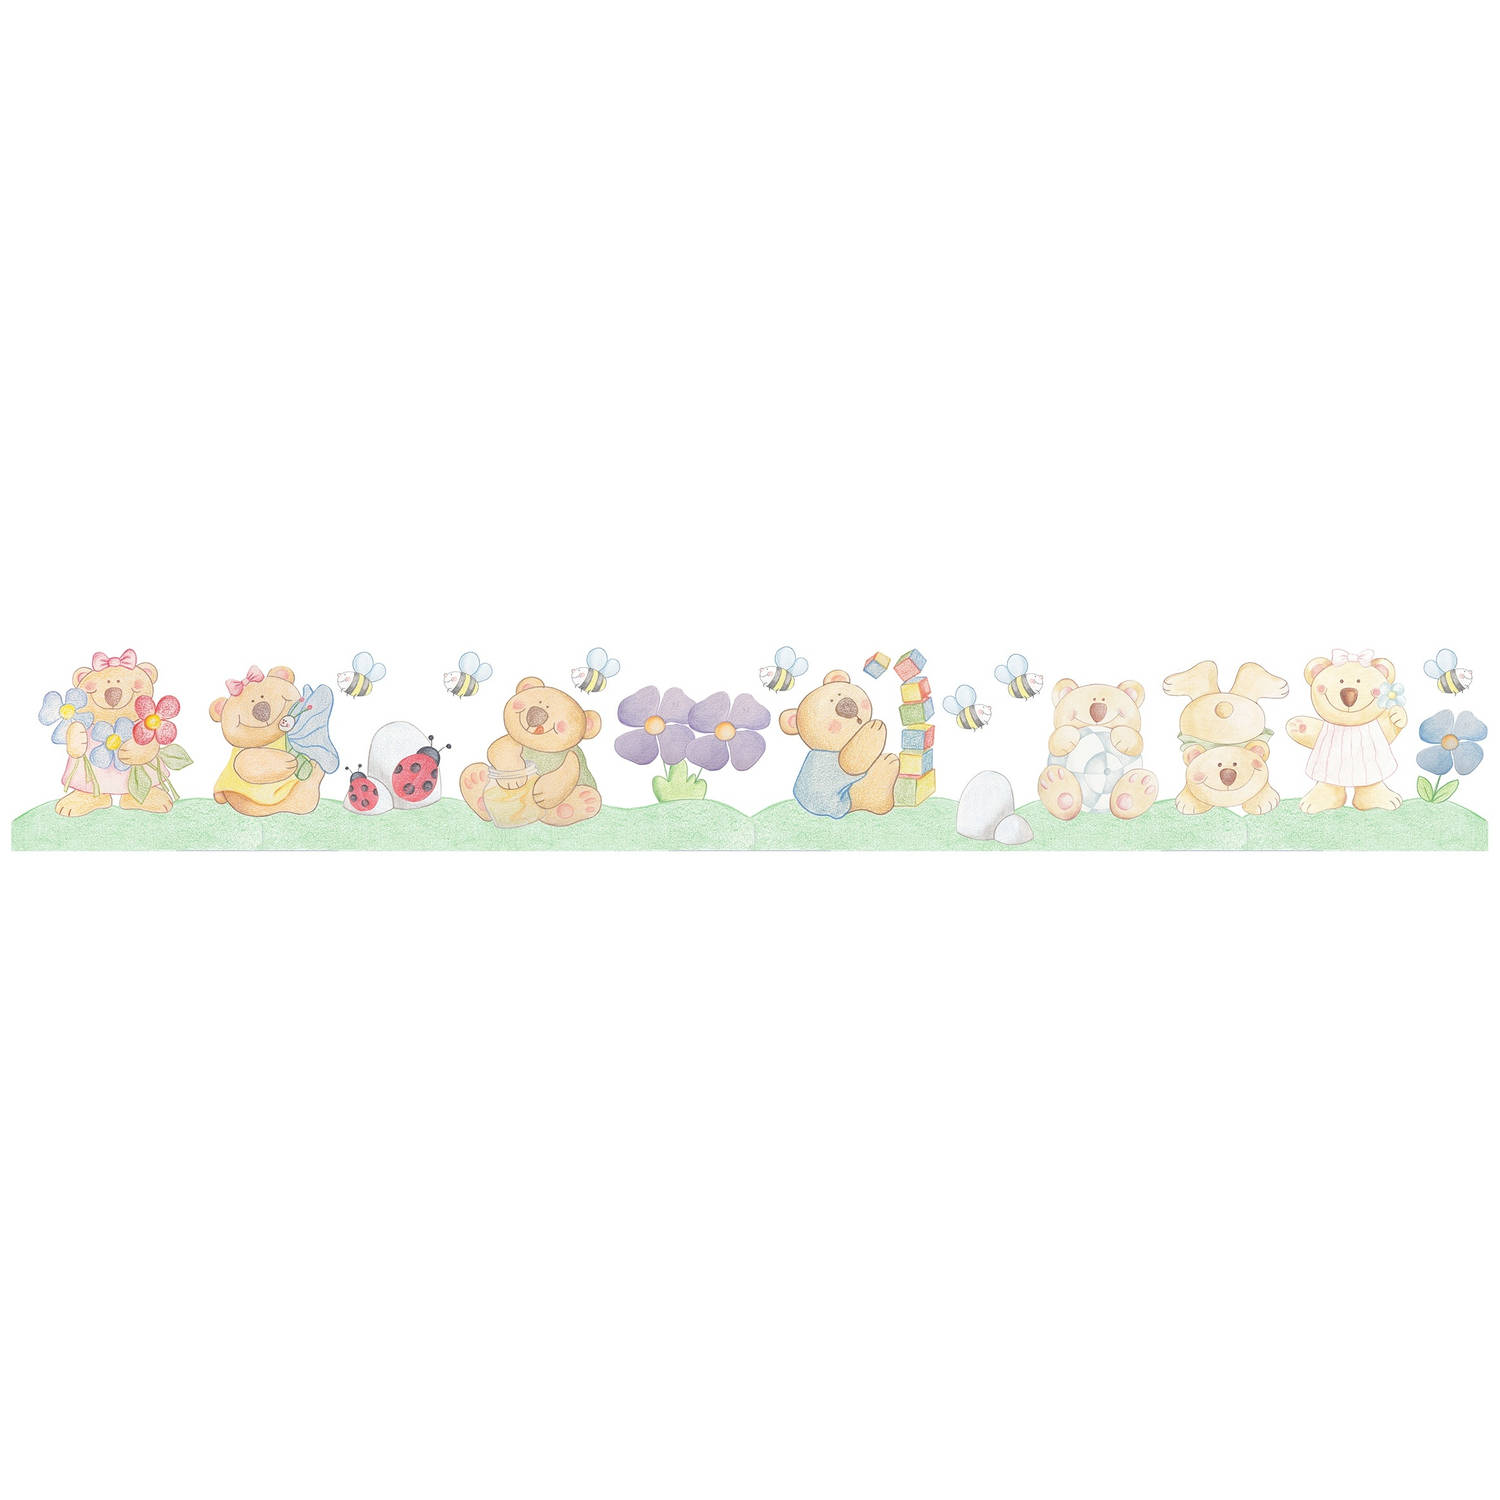 Kids Decor muurdecoratie border Bear Brothers junior